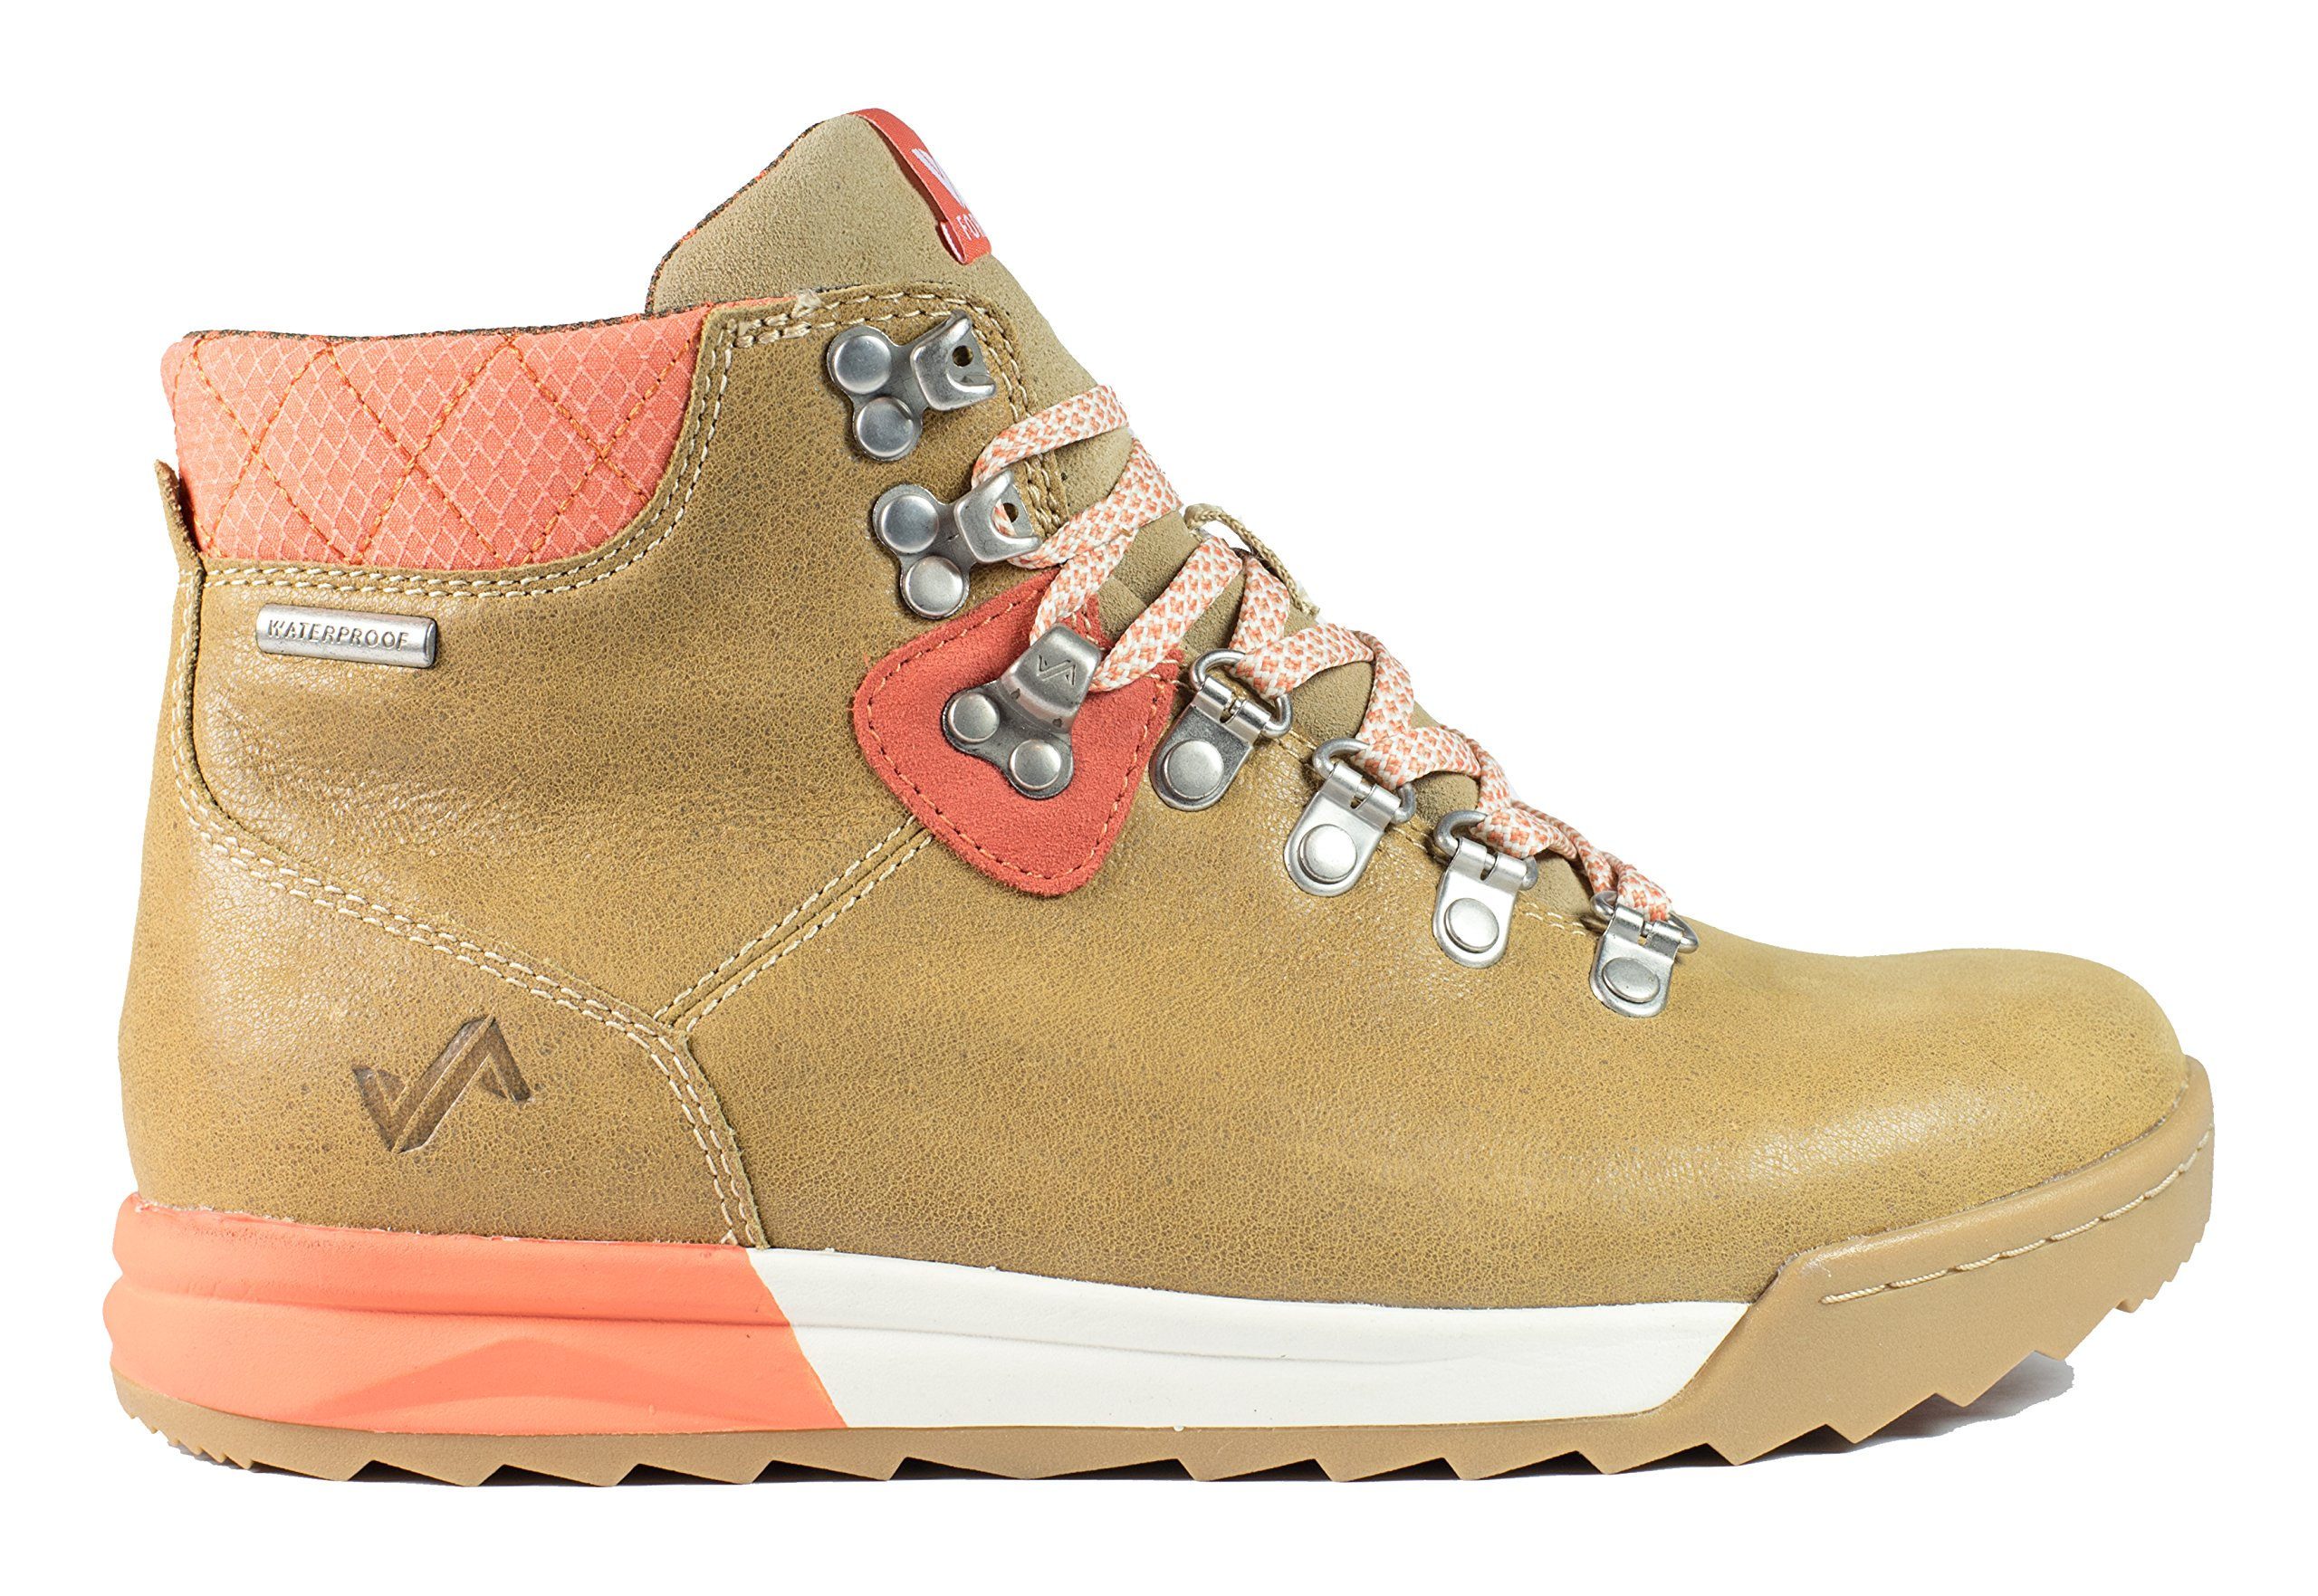 Forsake Patch - Women's Waterproof Premium Leather Hiking Boot (11, Sand/Coral)